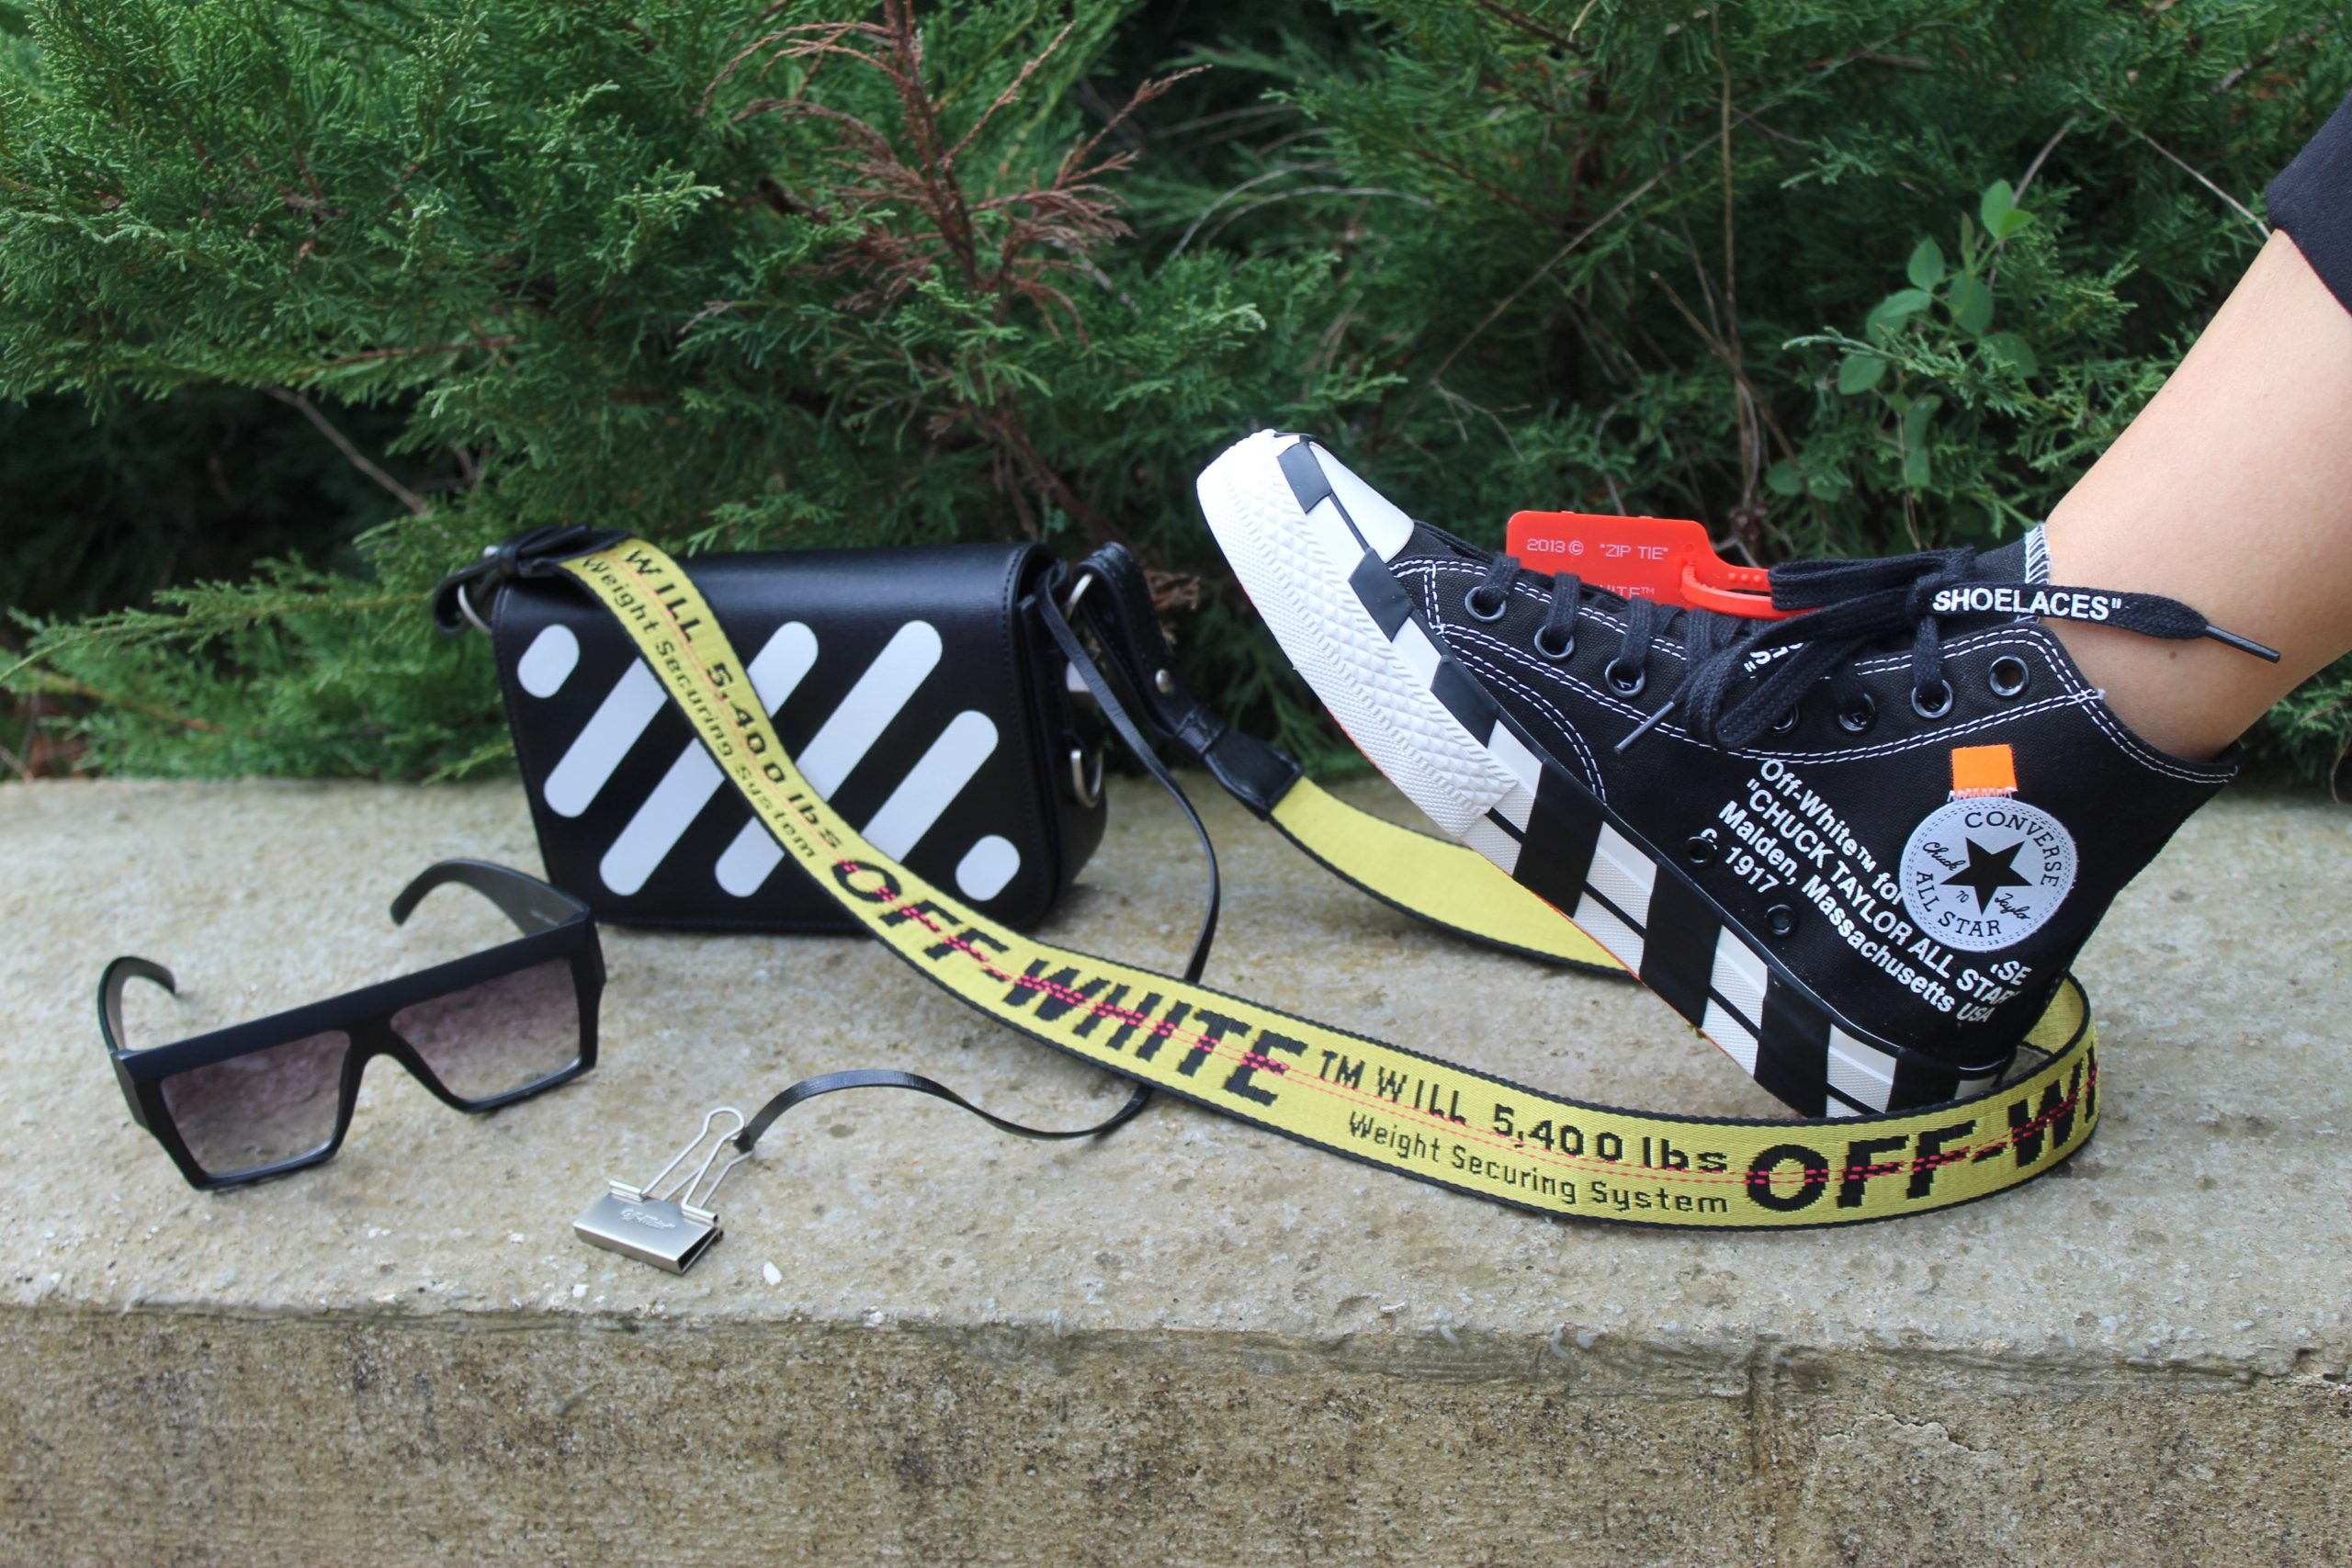 off white outfit ninenties grunge streetwear